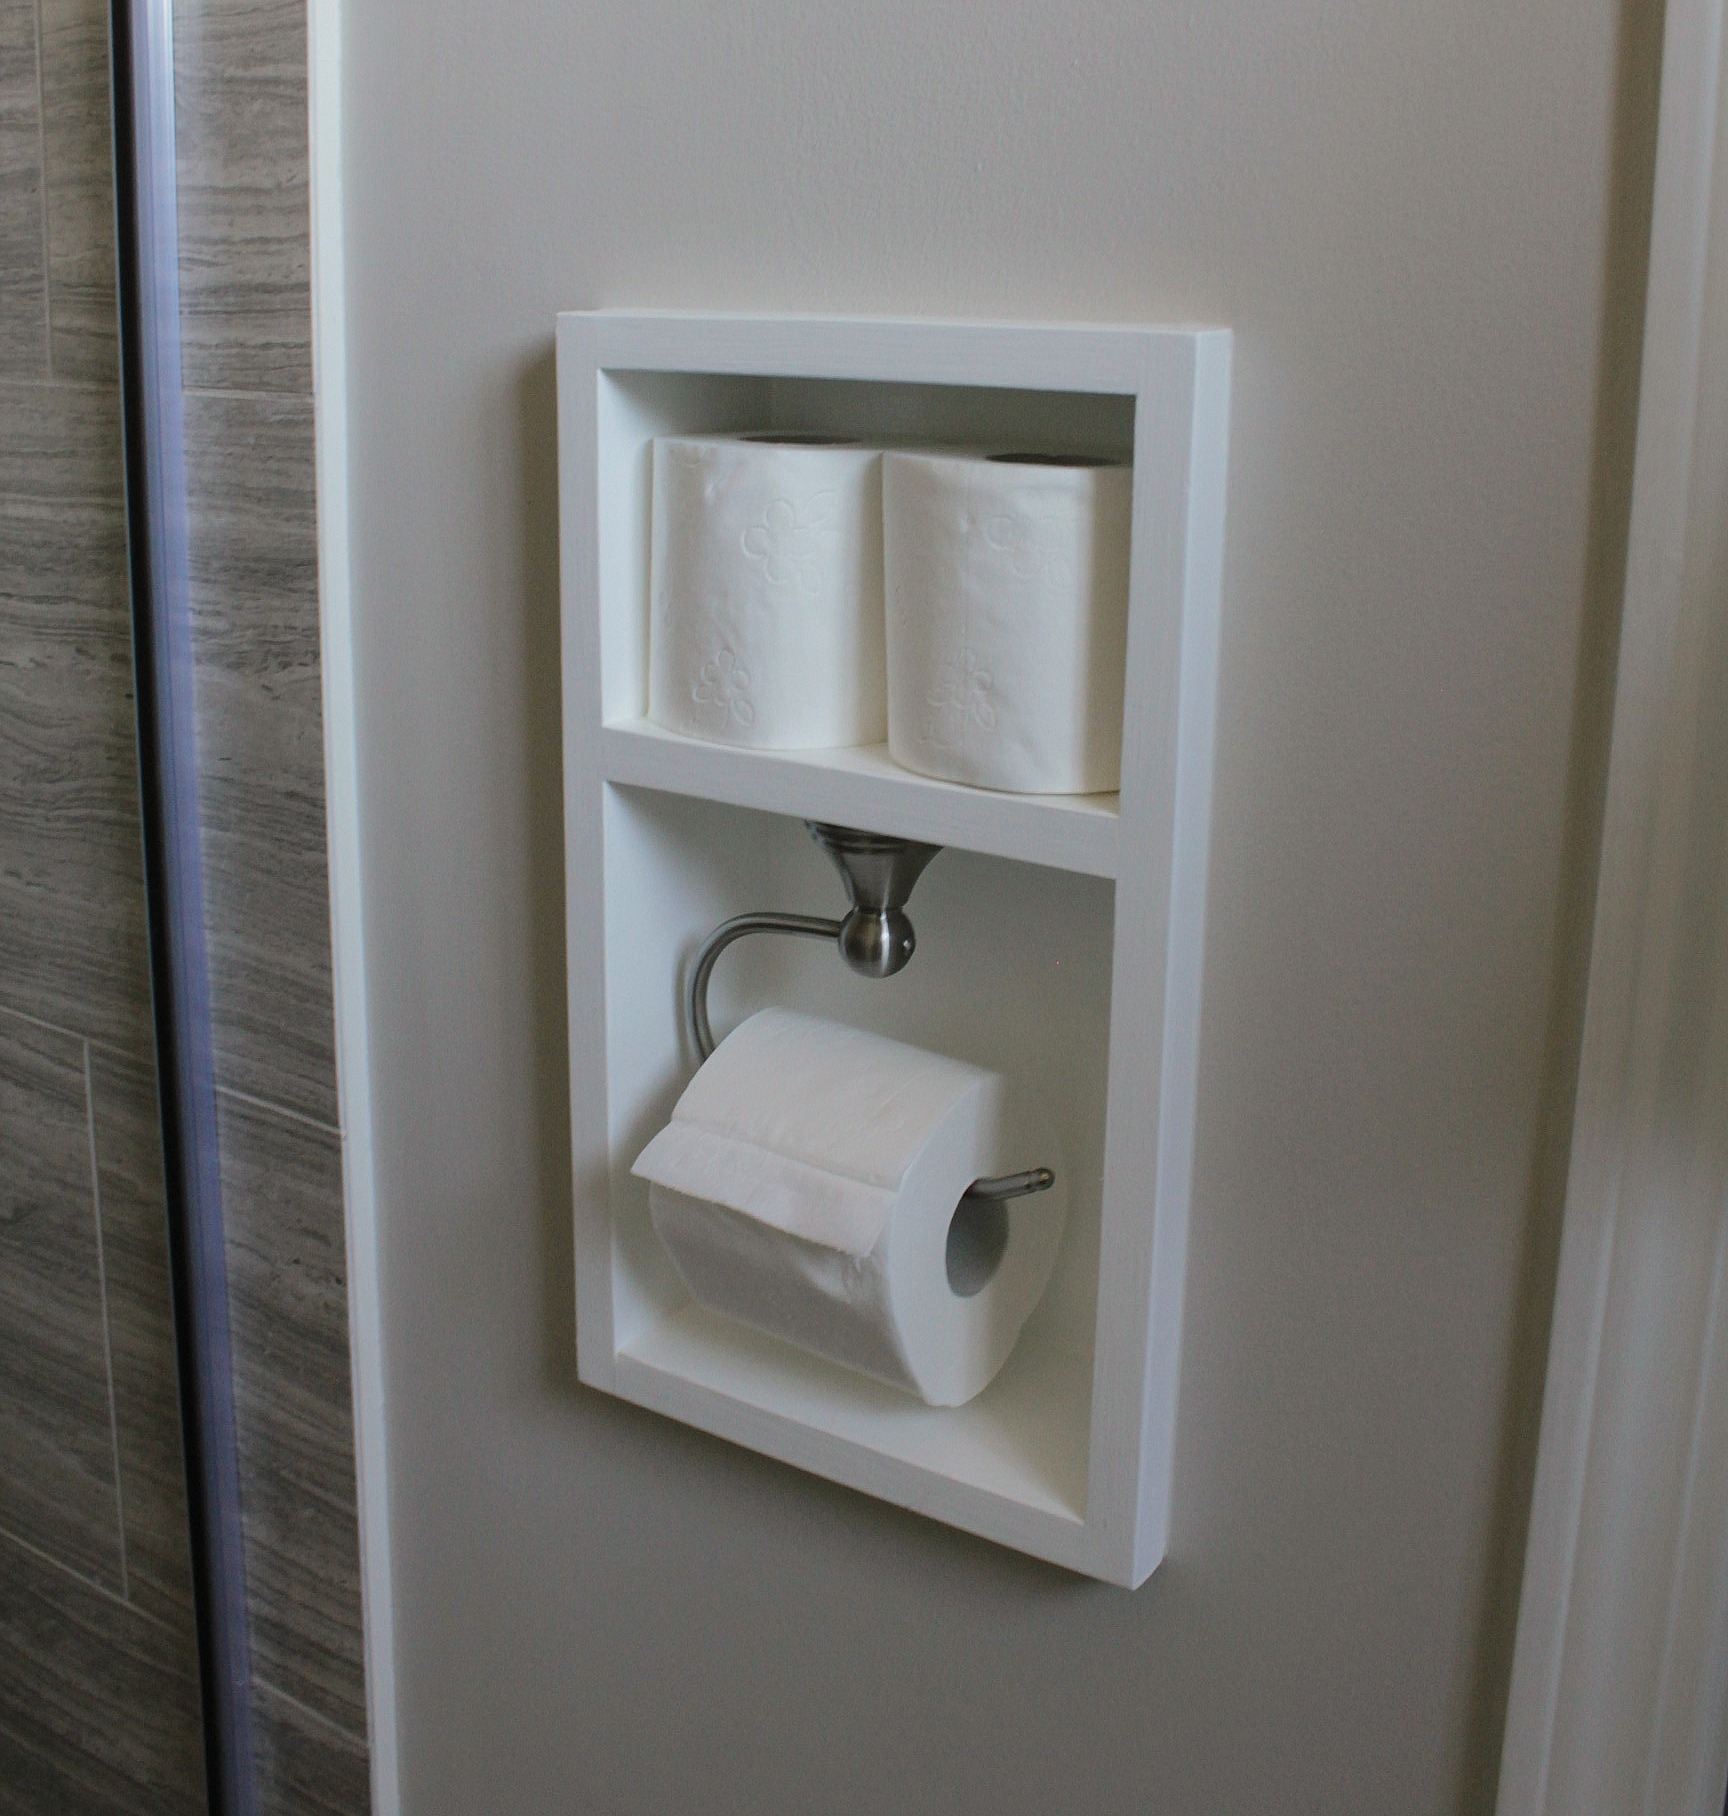 Bathroom Cabinets For Toilet Paper